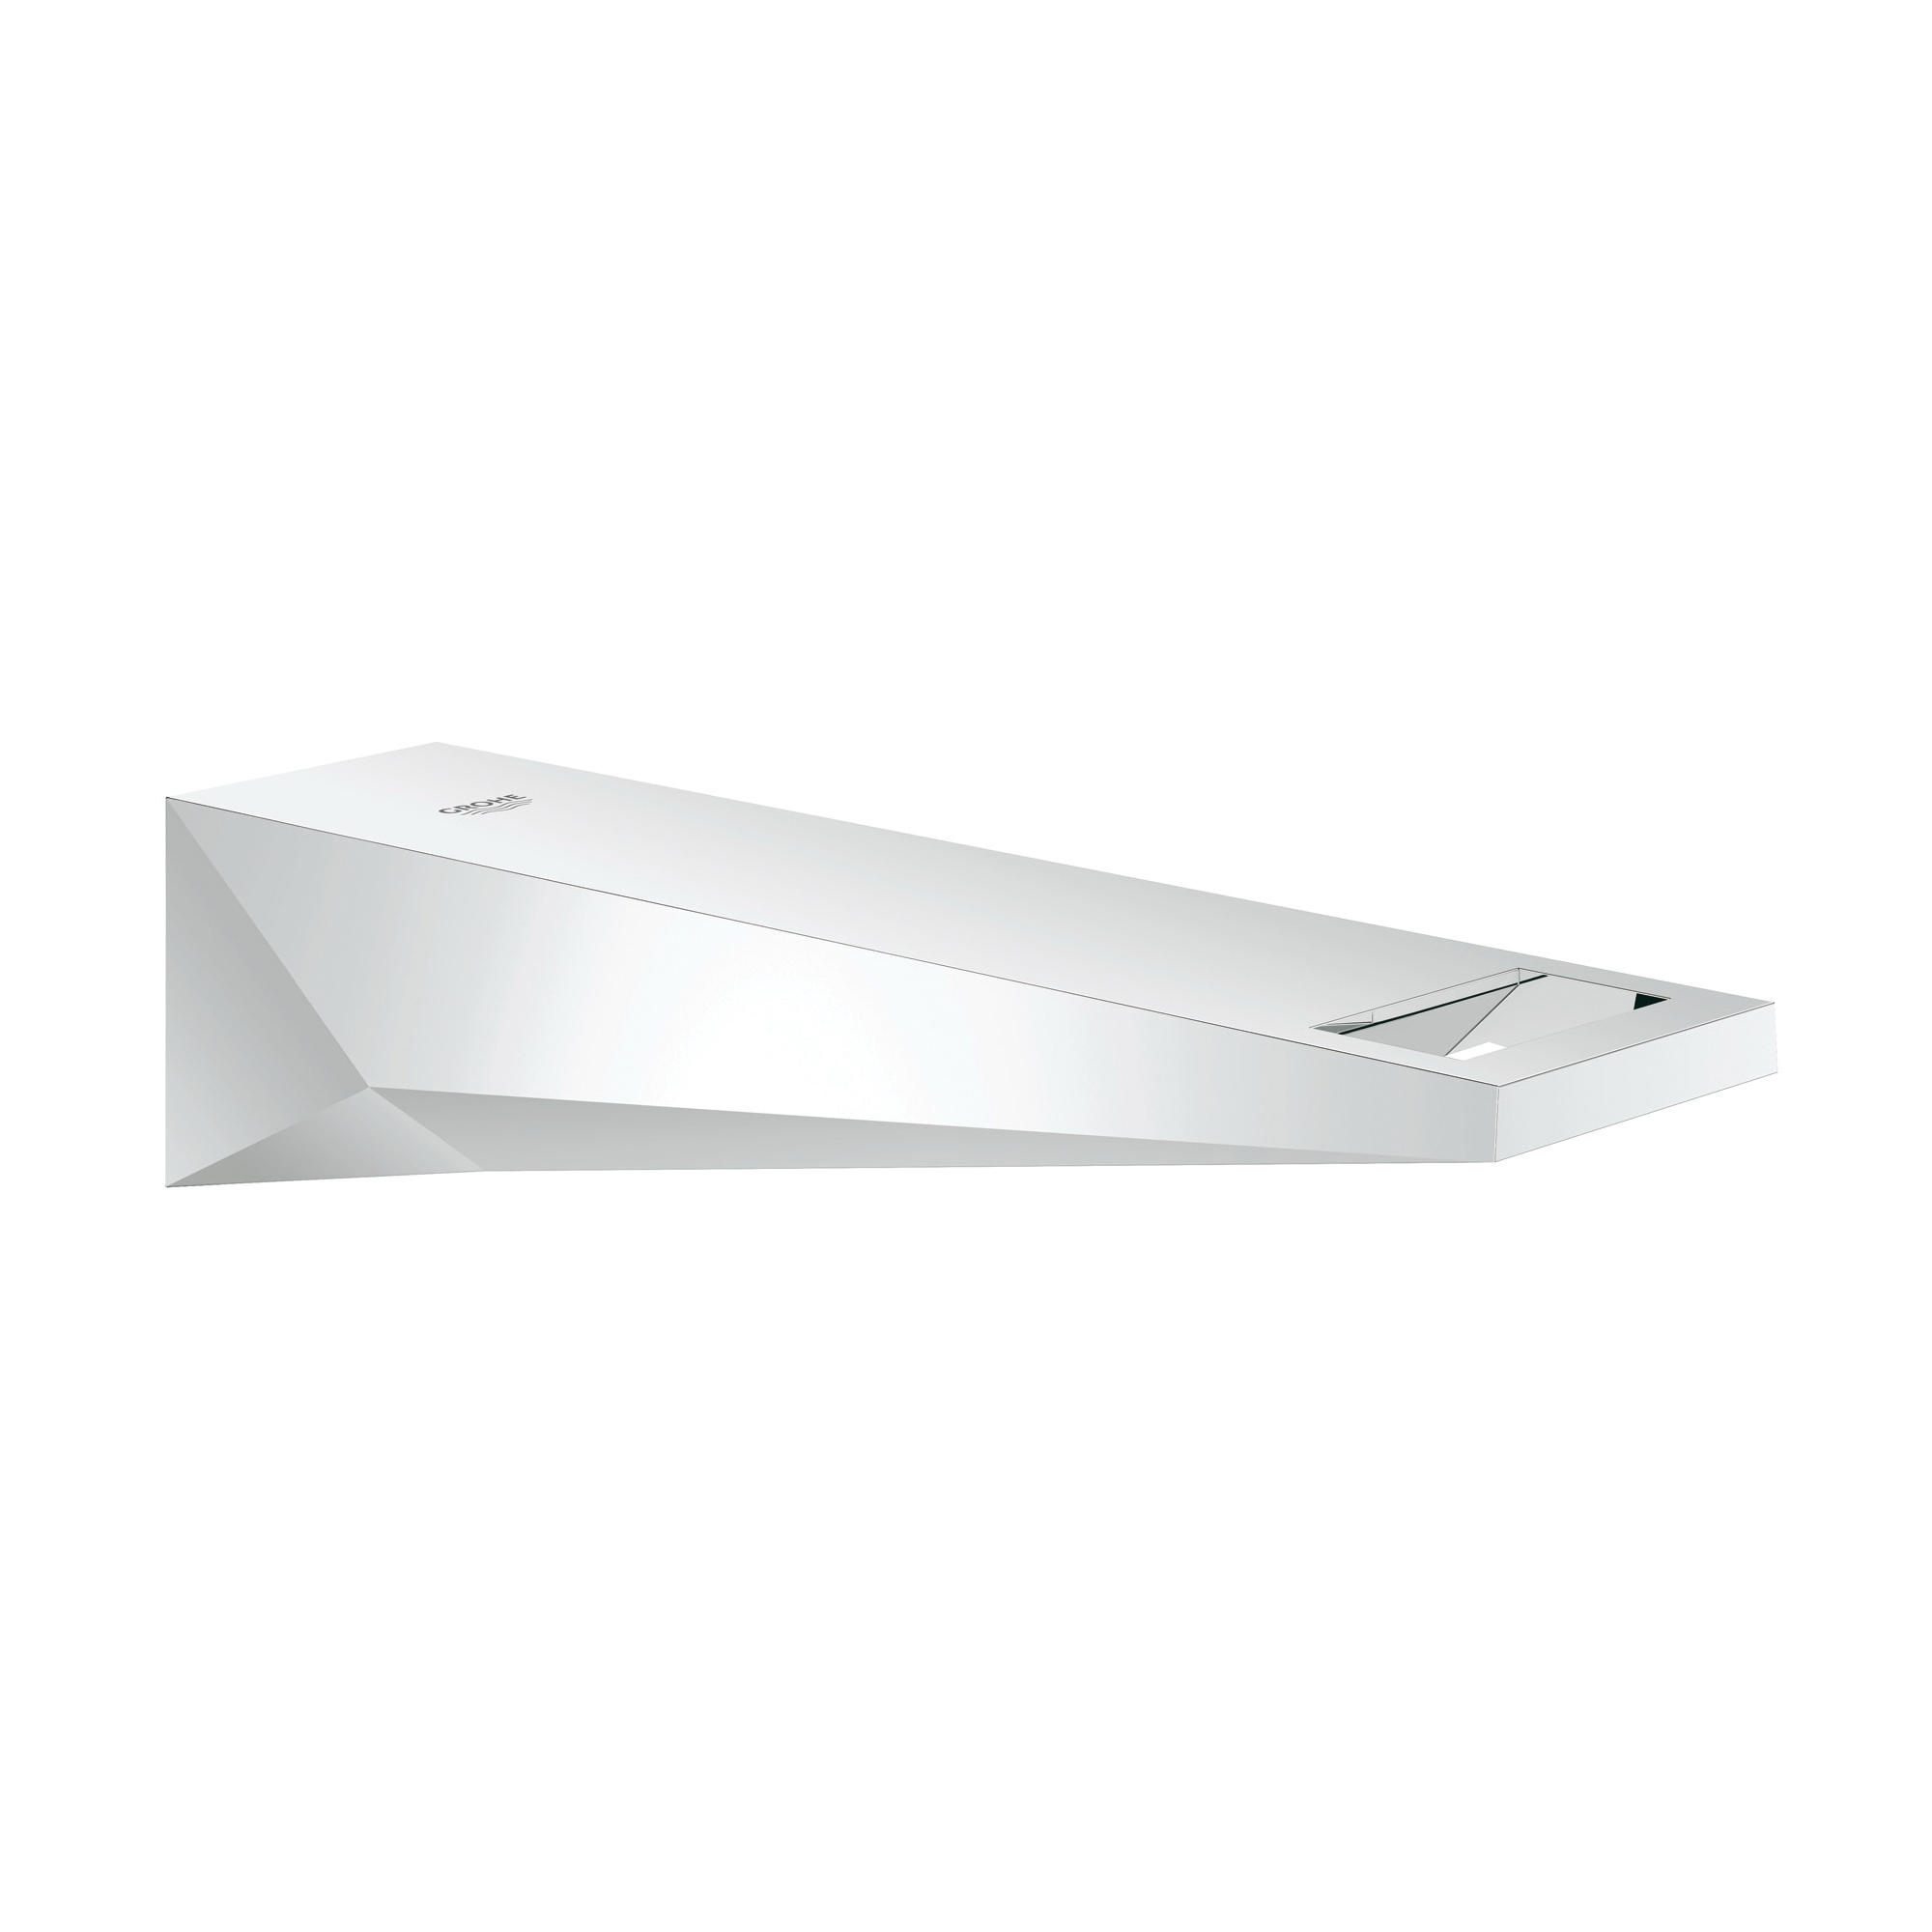 GROHE 13300000 Allure Brilliant Wall Mount Tub Spout With Integrated Flow Control, 6-3/8 in L, 1/2 in FNPT Connection, StarLight® Chrome Plated, Import